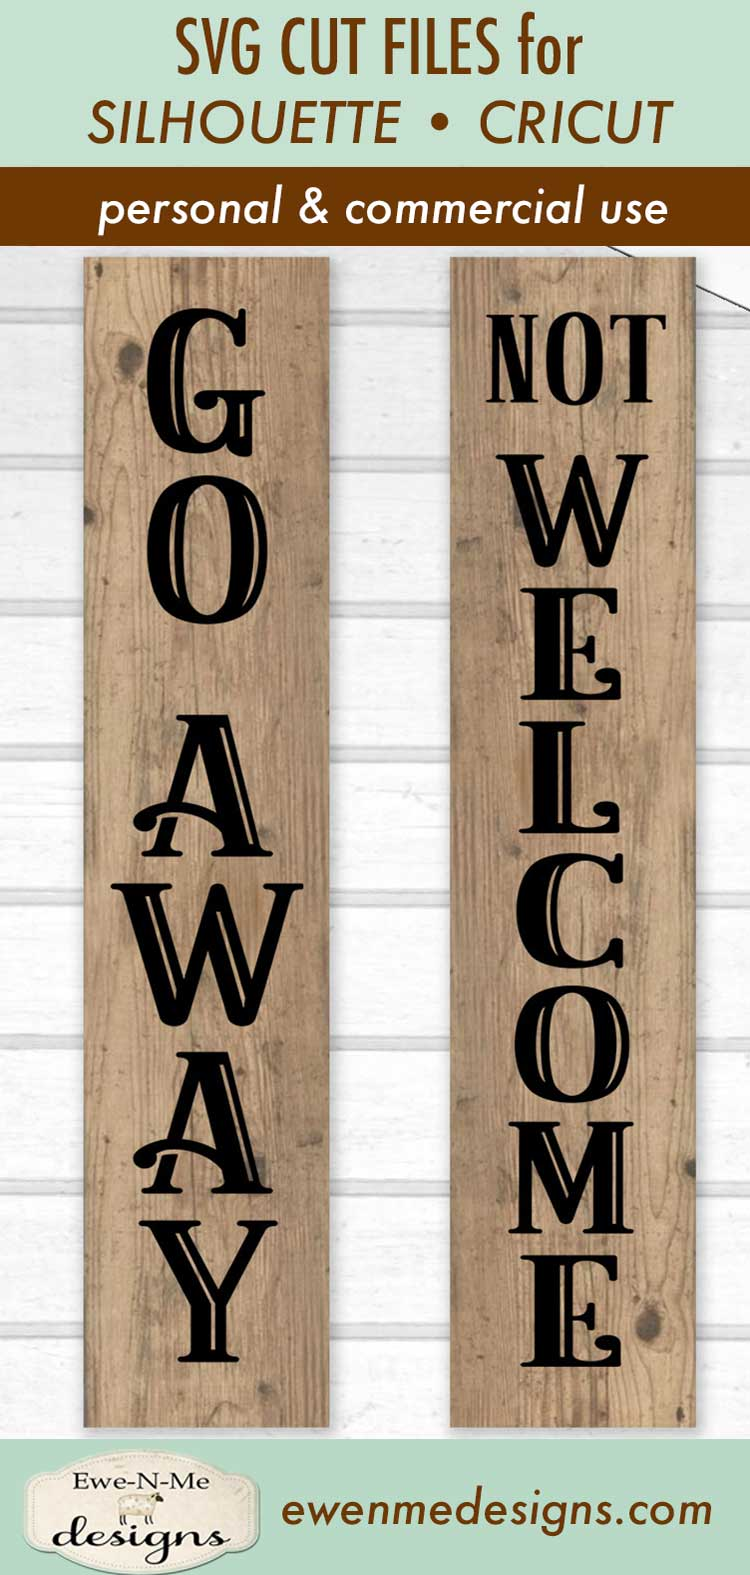 Sarcastic Not Welcome - Go Away - Porch Sign - SVG DXF Files example image 3